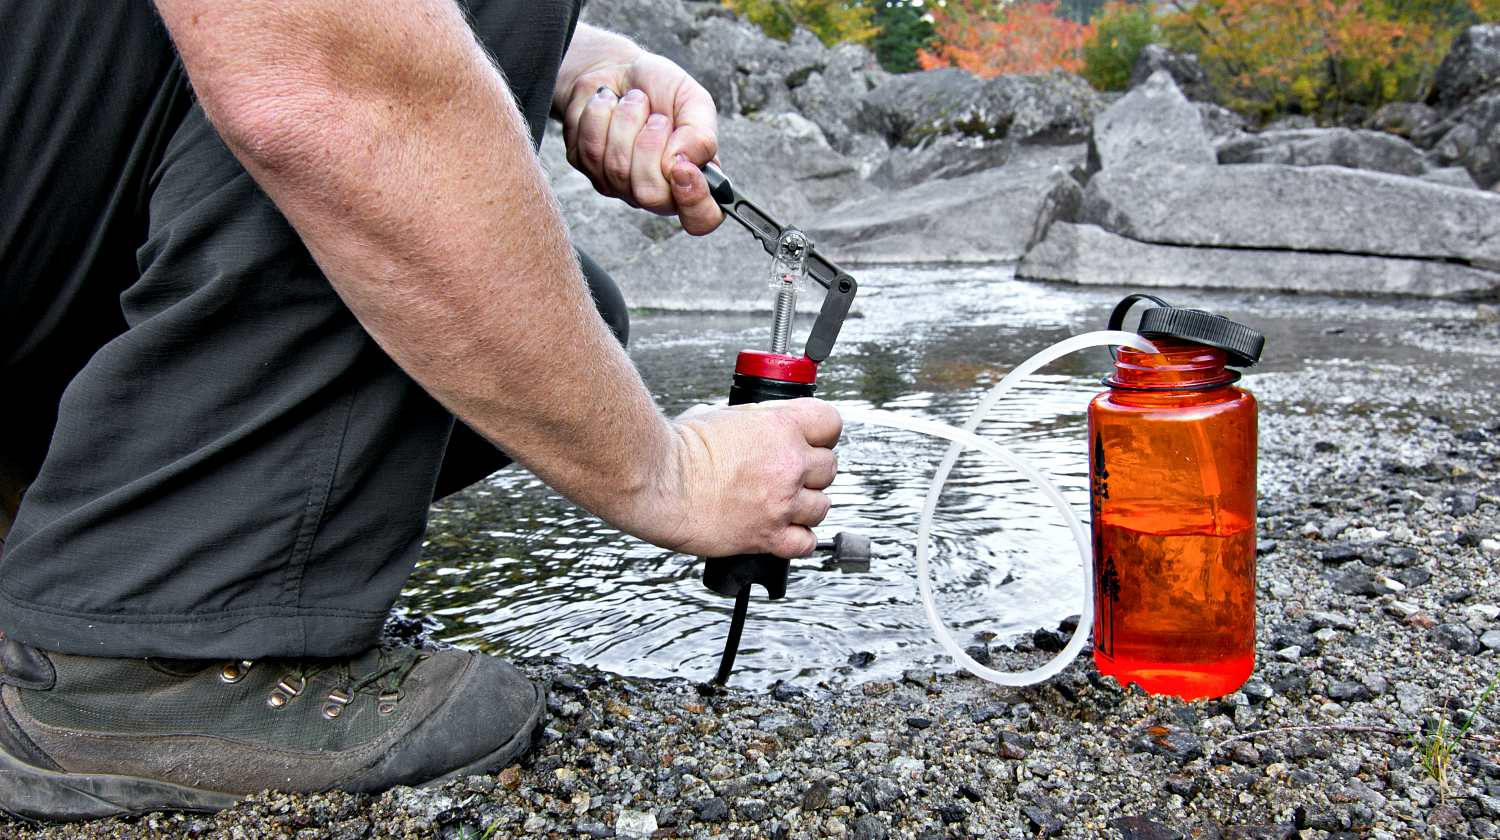 Hiker filtering water from stream | How To Purify Water | Water Decontamination Techniques | Featured